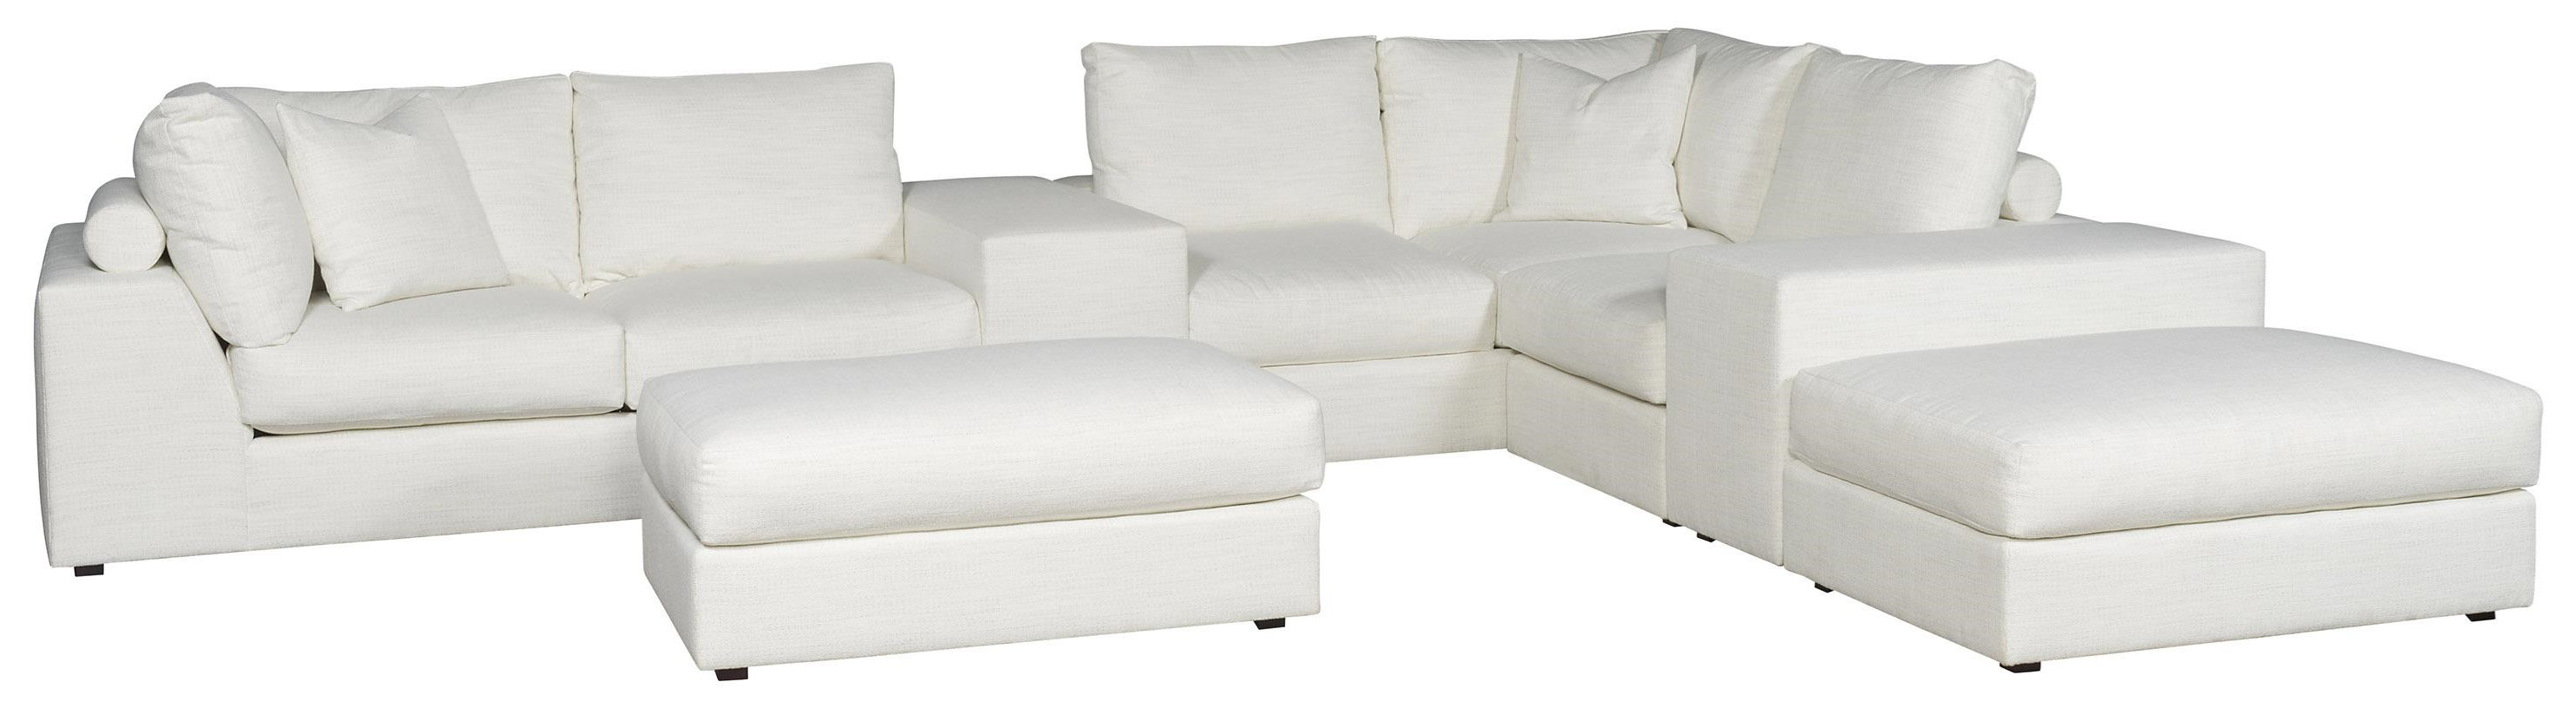 Lucca Lucca Sectional by Vanguard Furniture at Baer's Furniture